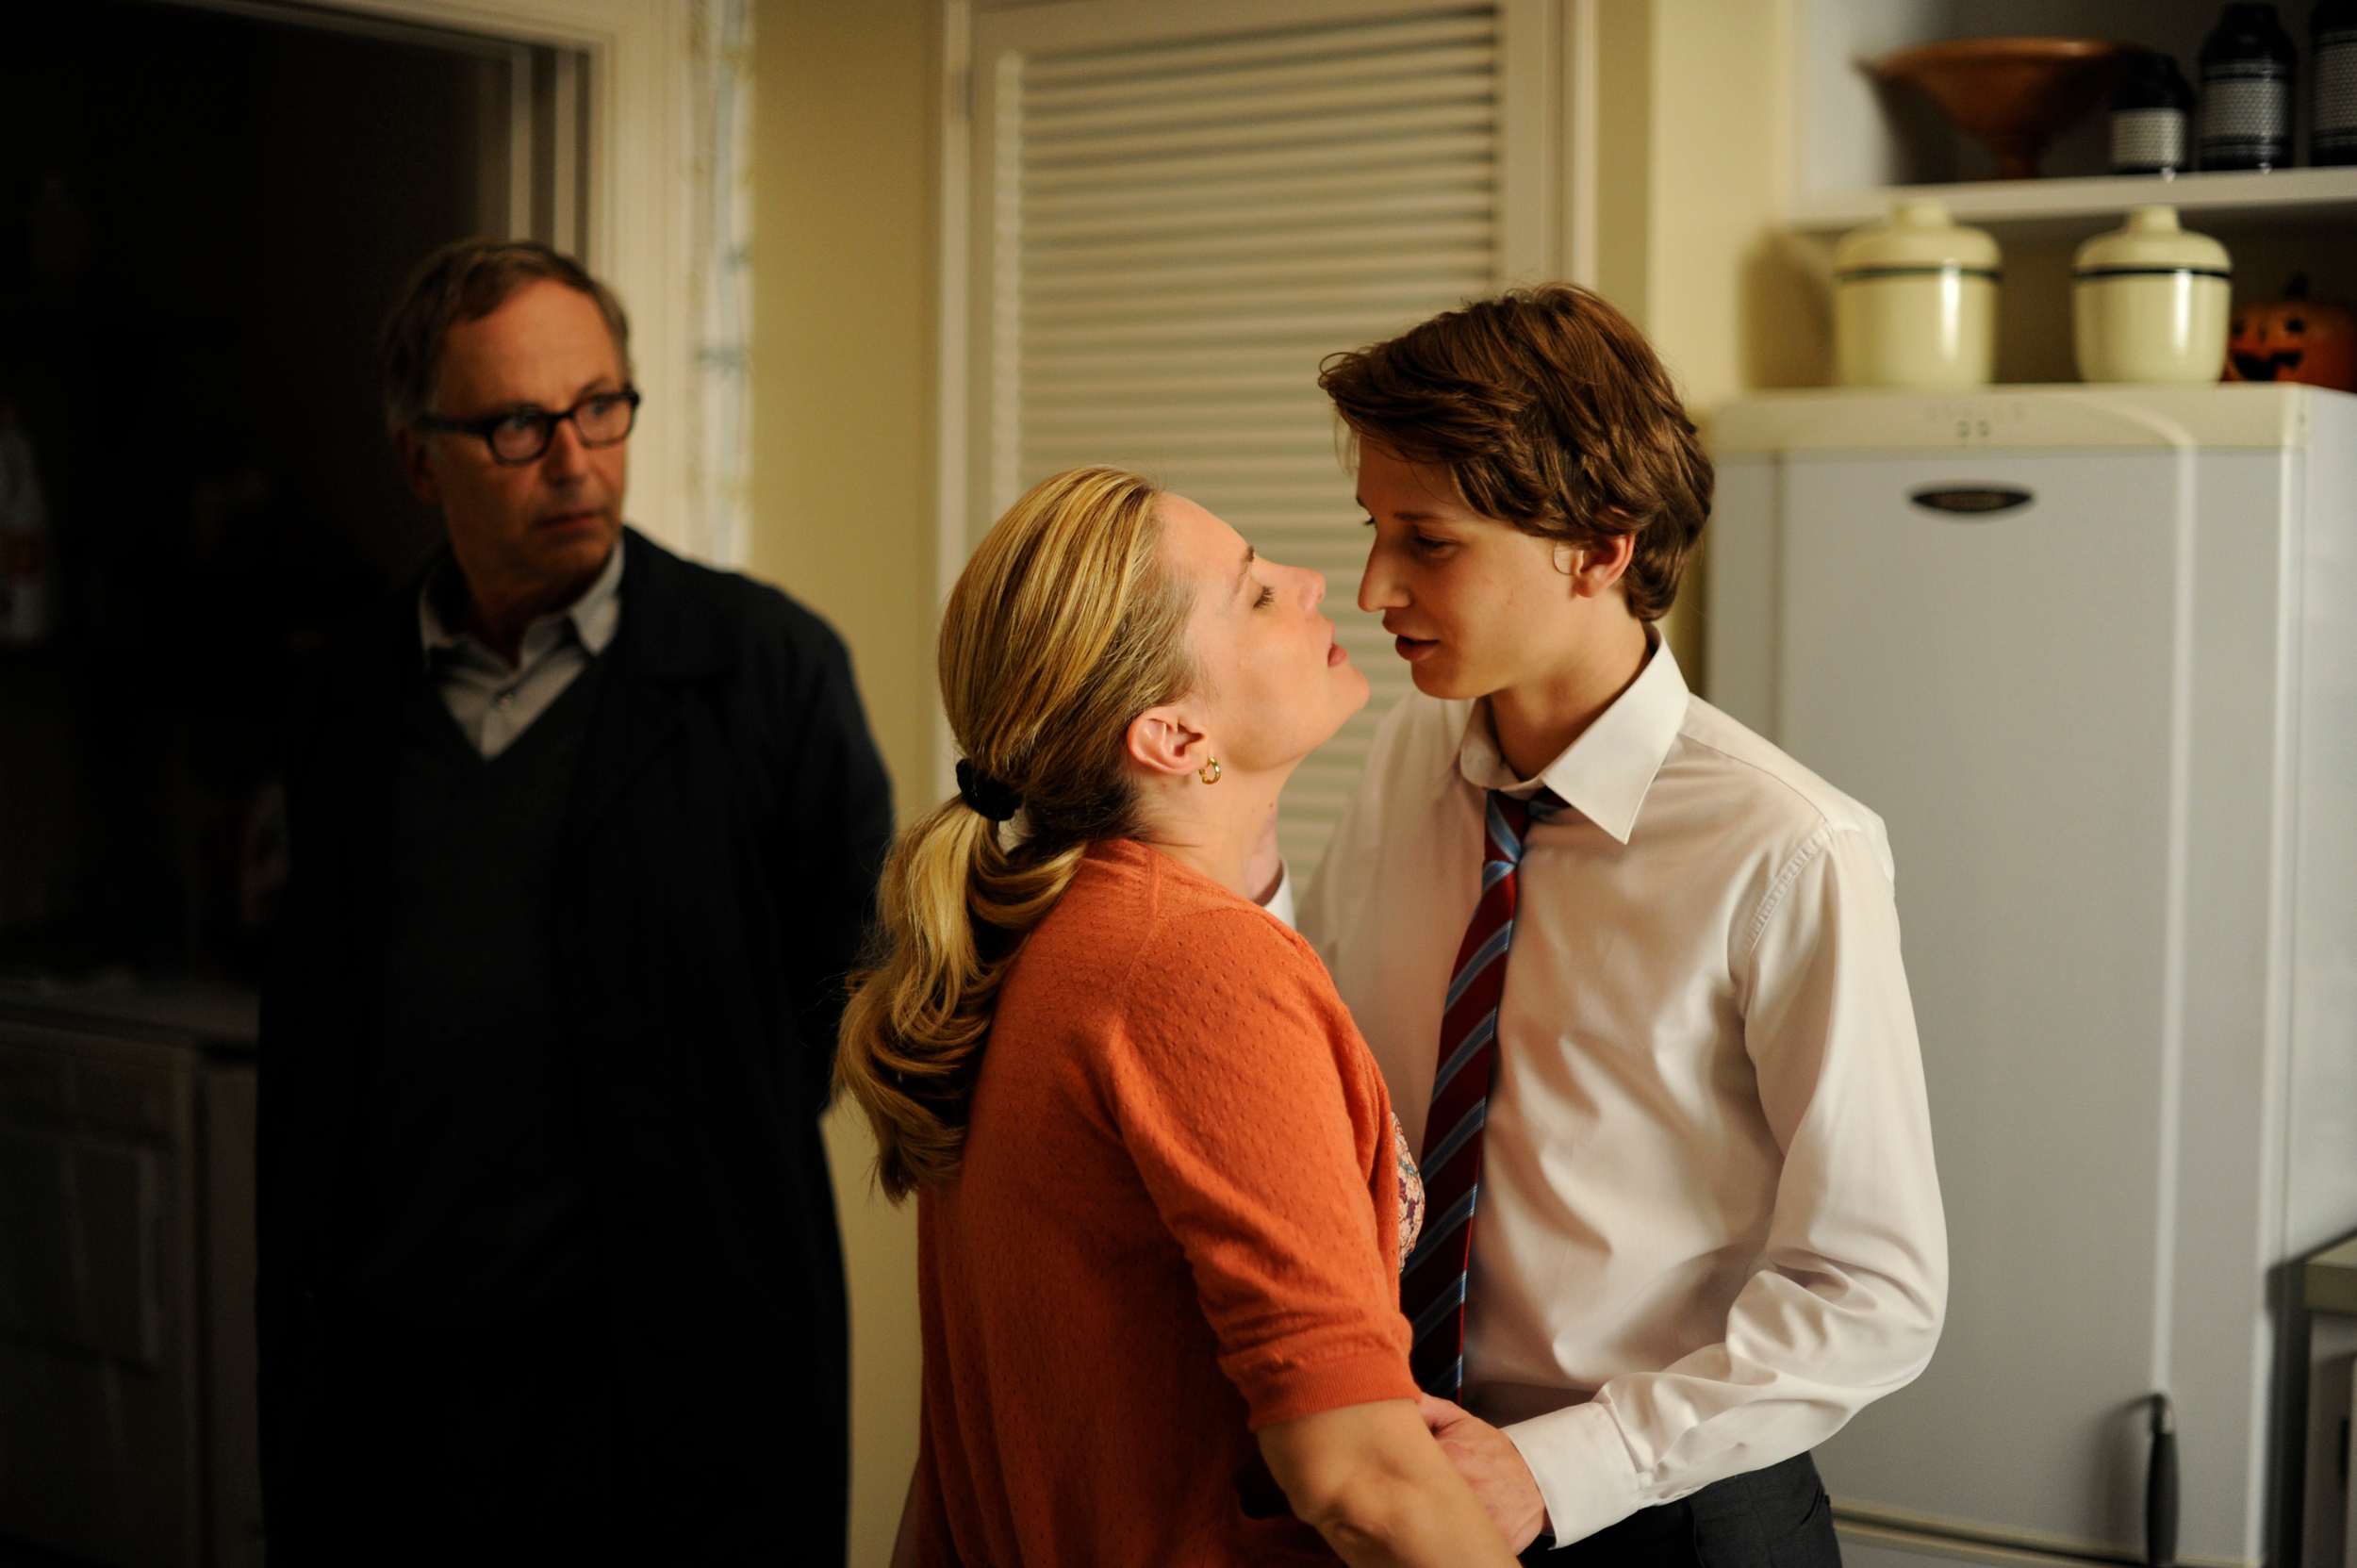 Film still from In the House François Ozon, directed by